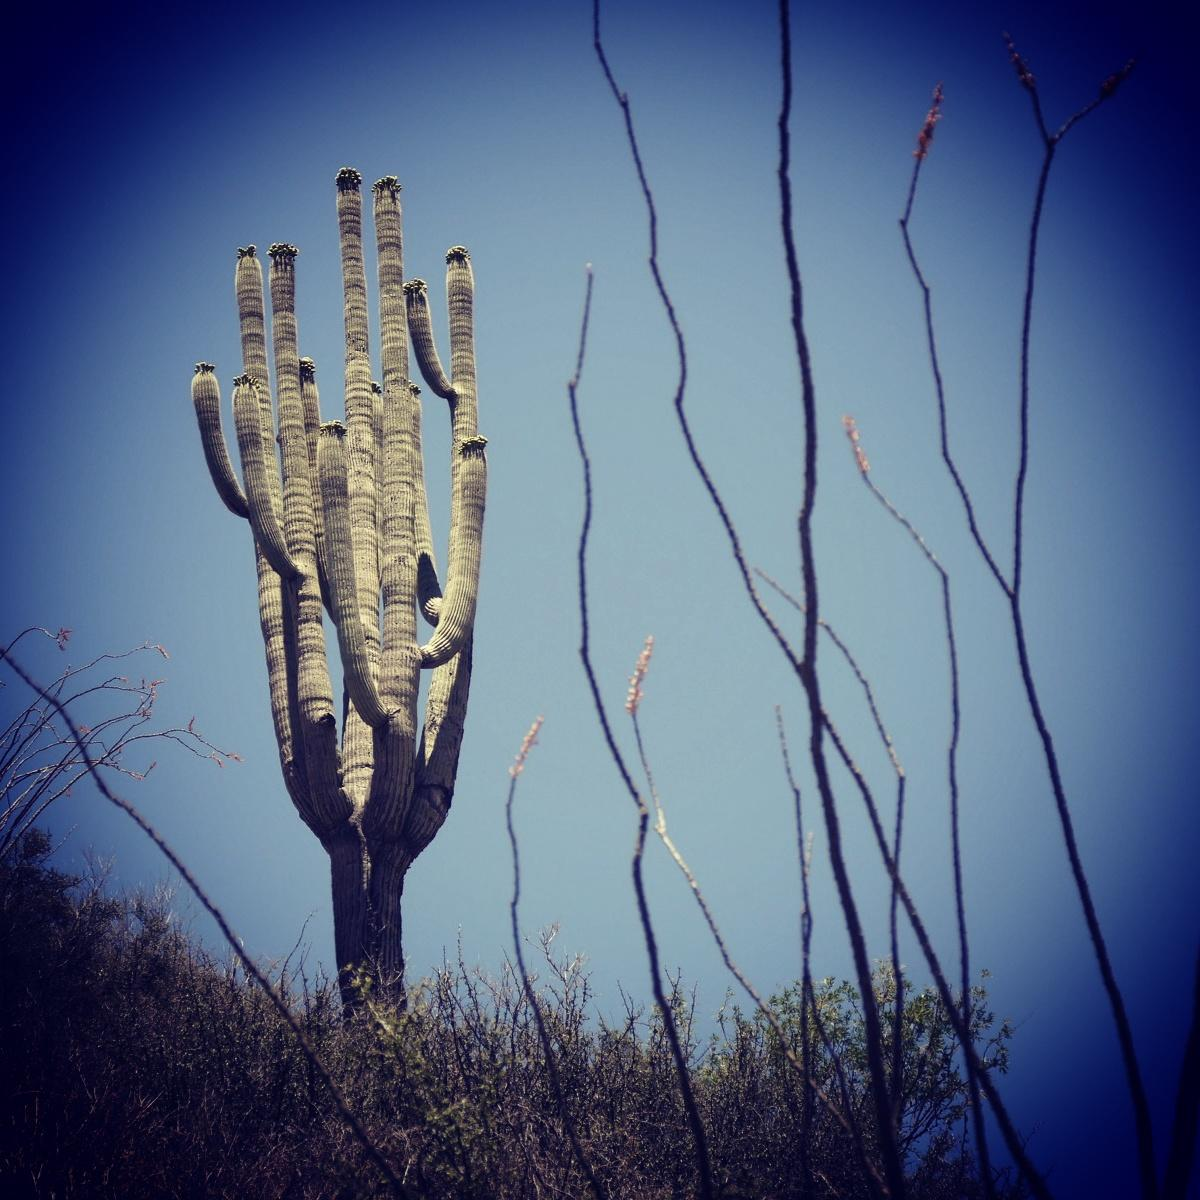 A Saguaro cactus is framed by ocotillo plants in California Gulch. Noah Strycker